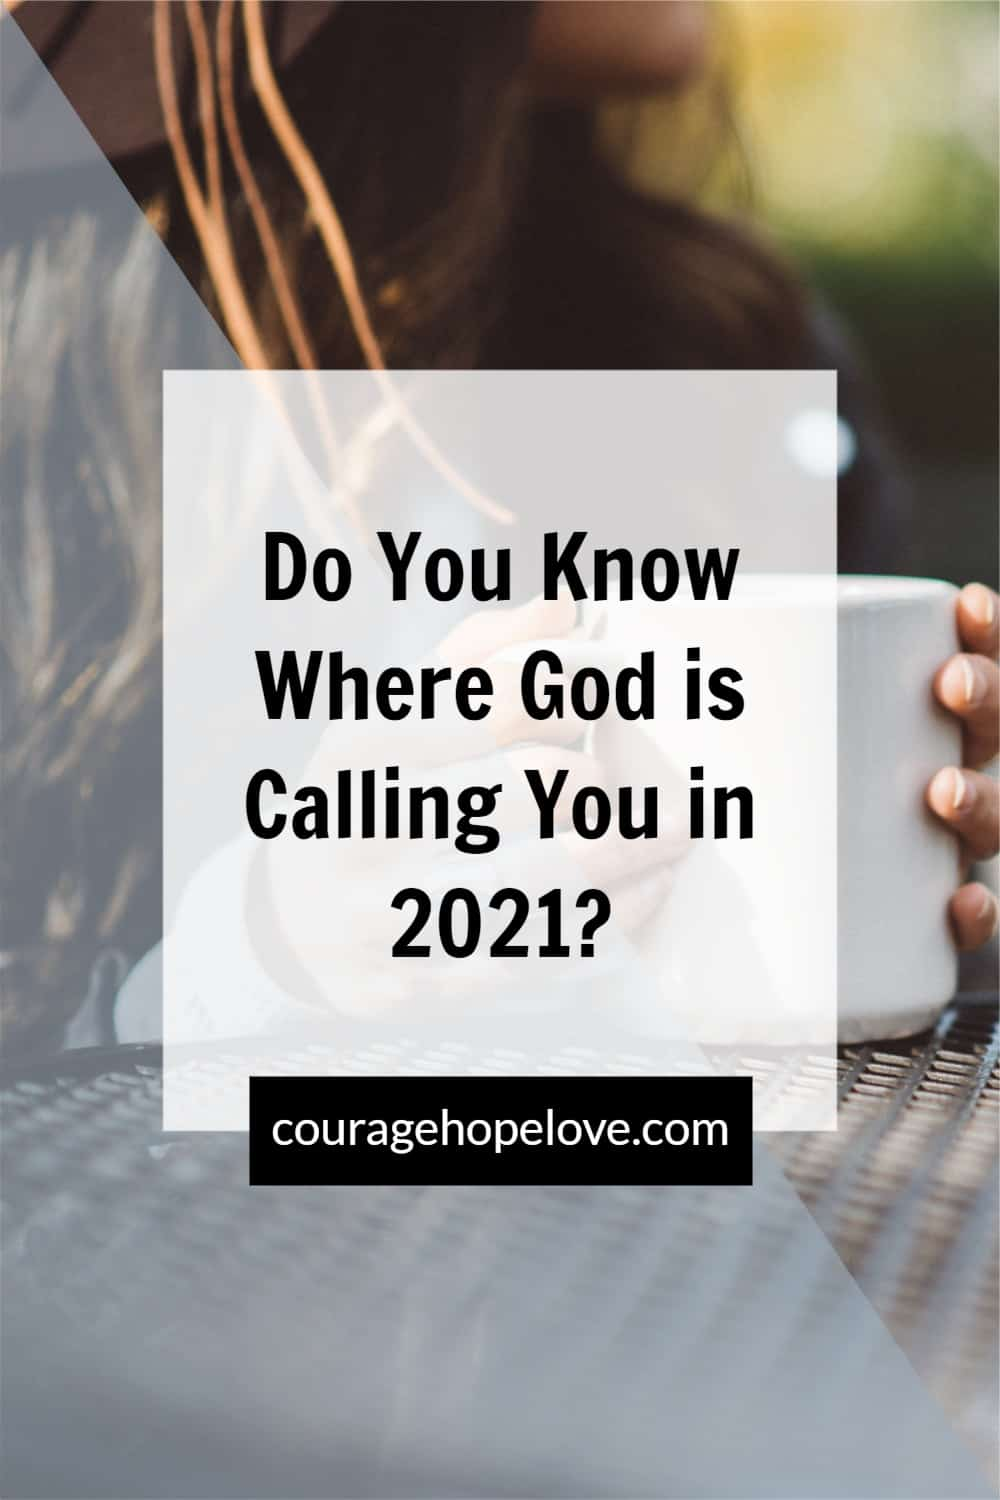 Do You Know Where God is Calling You in 2021?